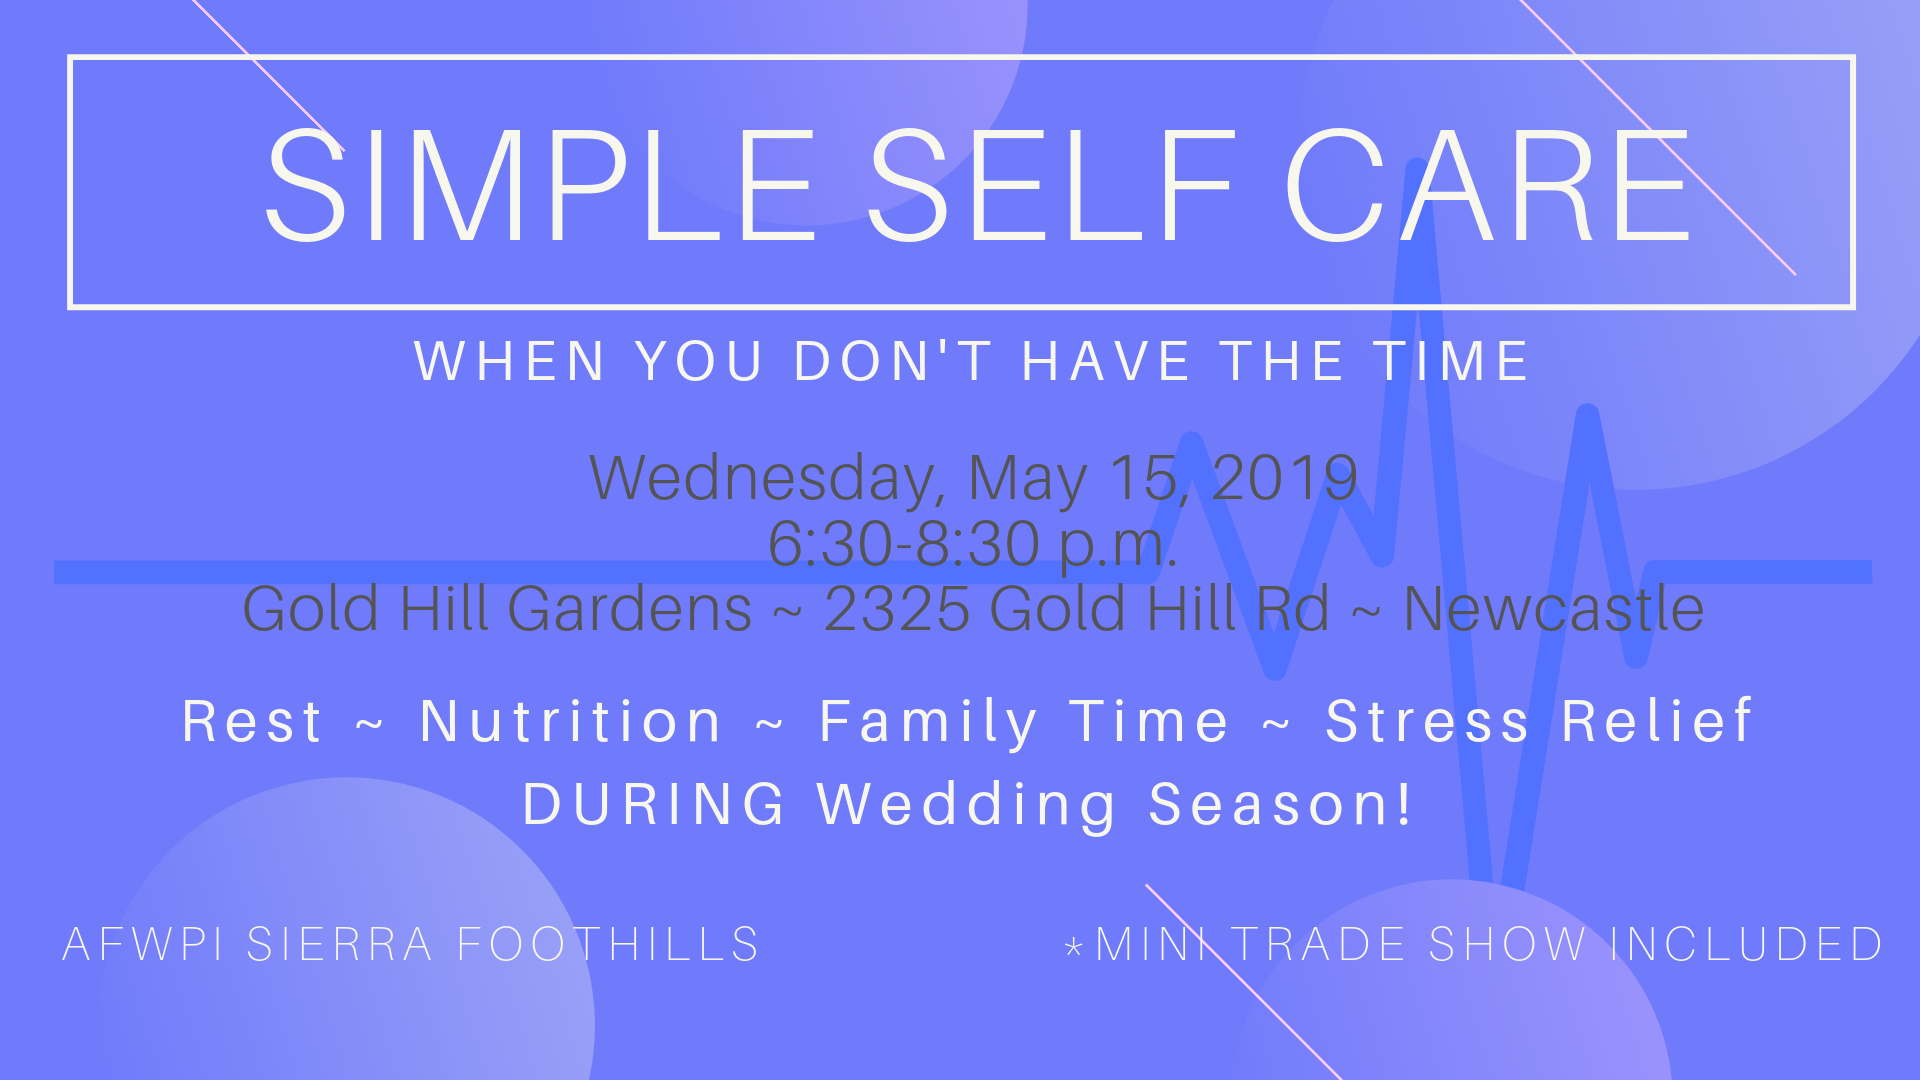 Self Care Placer wedding pros networking mixer